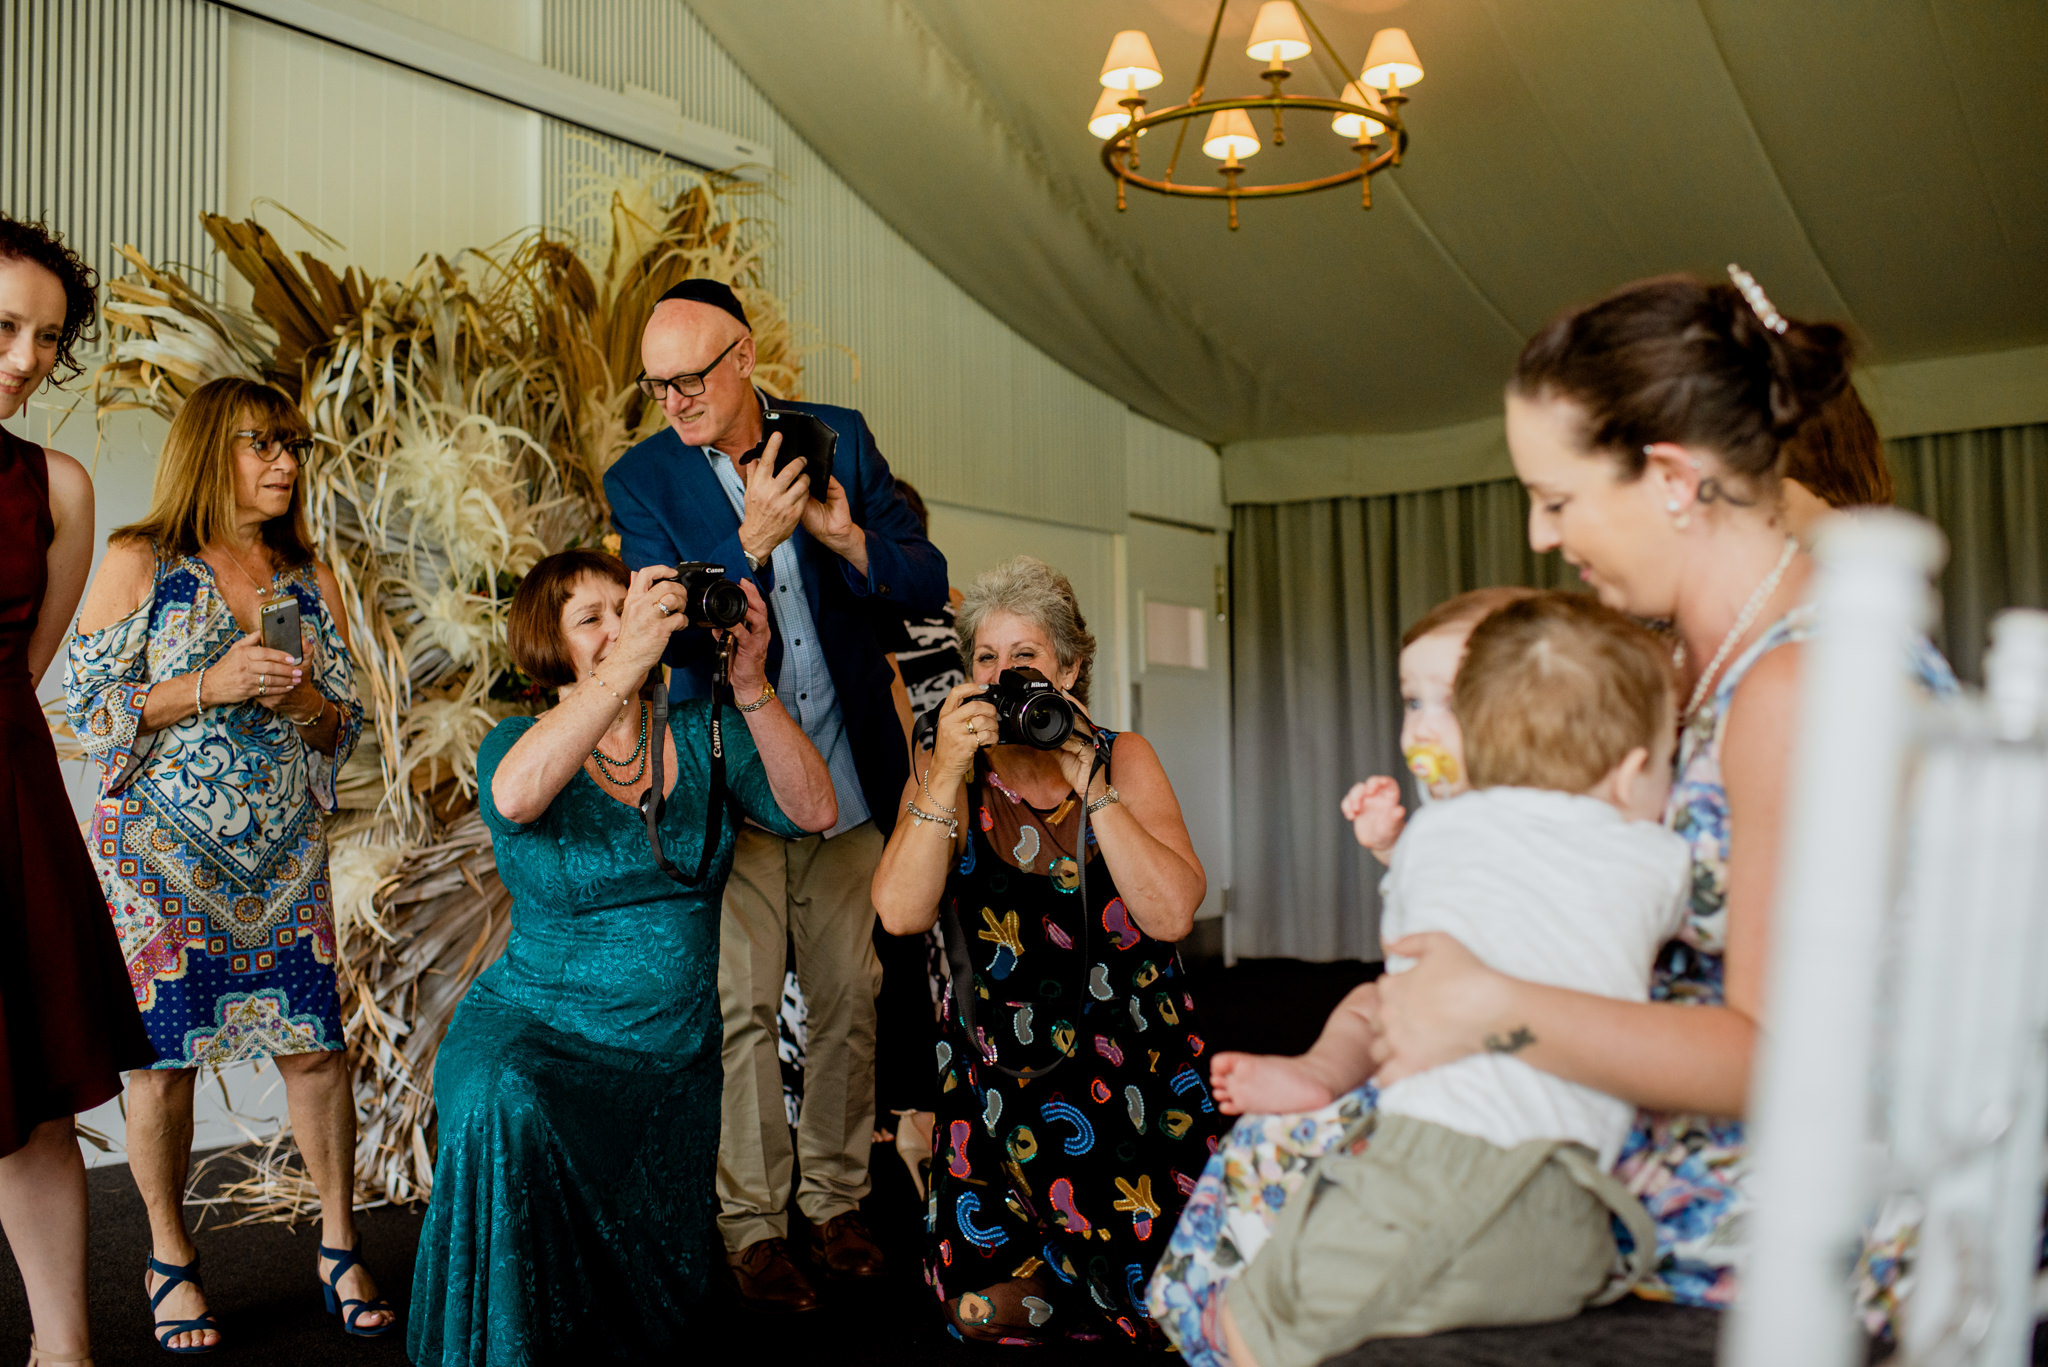 Three elderly people take photos of a young family